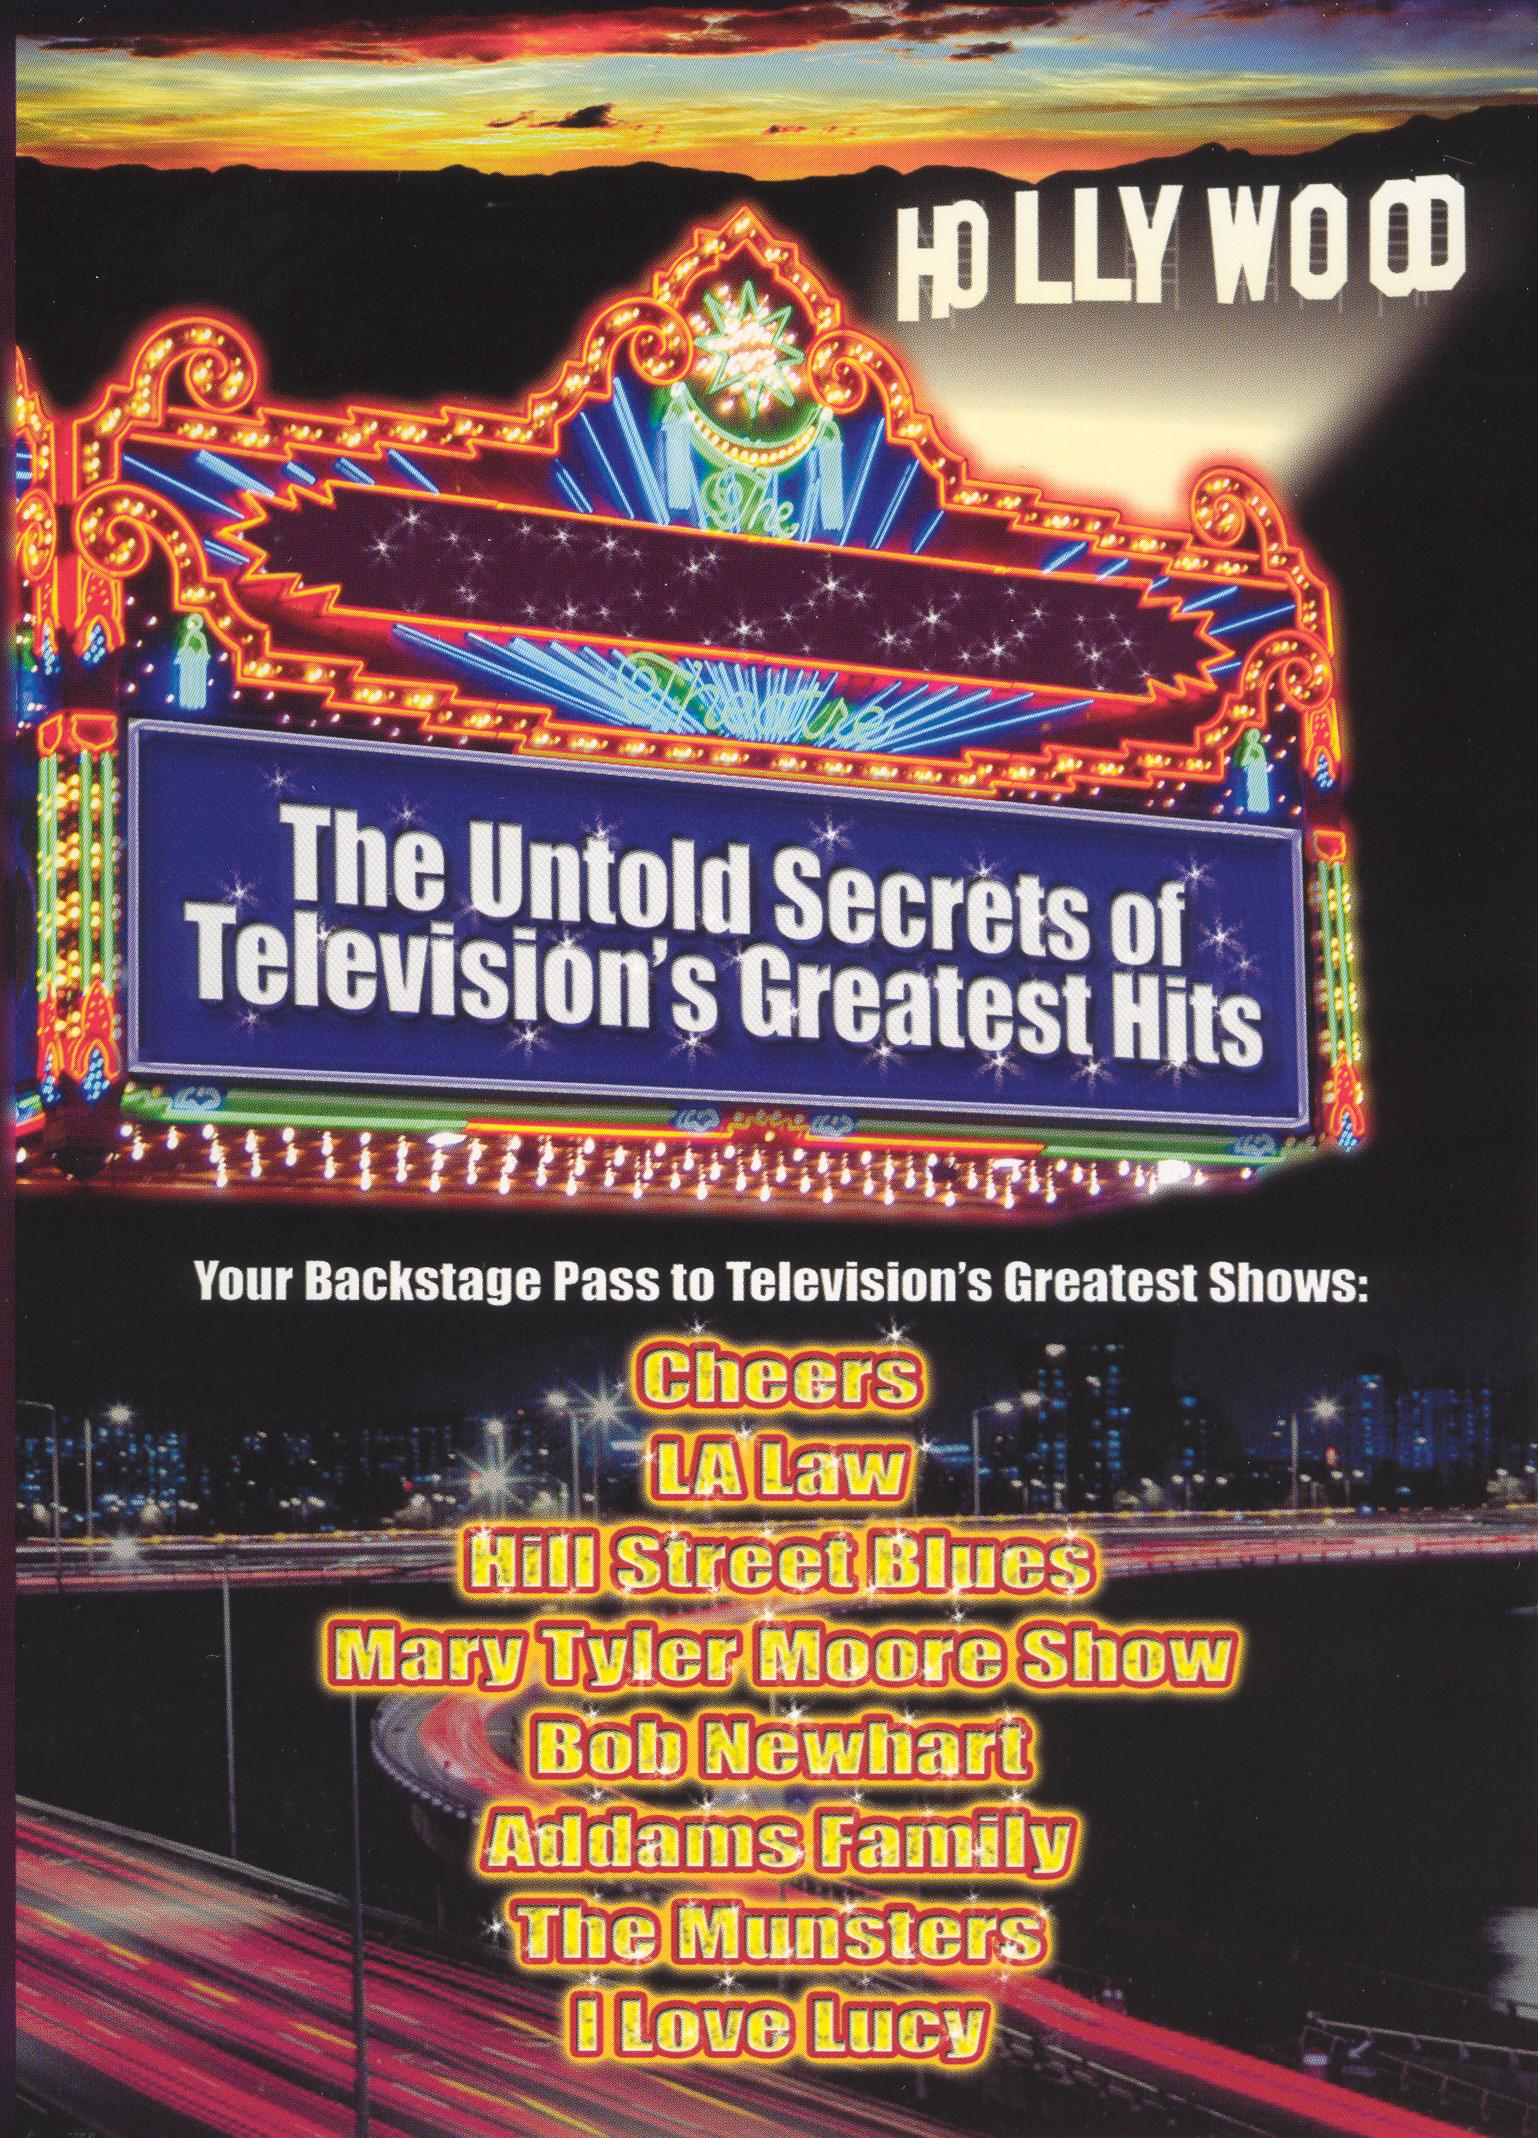 The Untold Secrets of Television's Greatest Hits